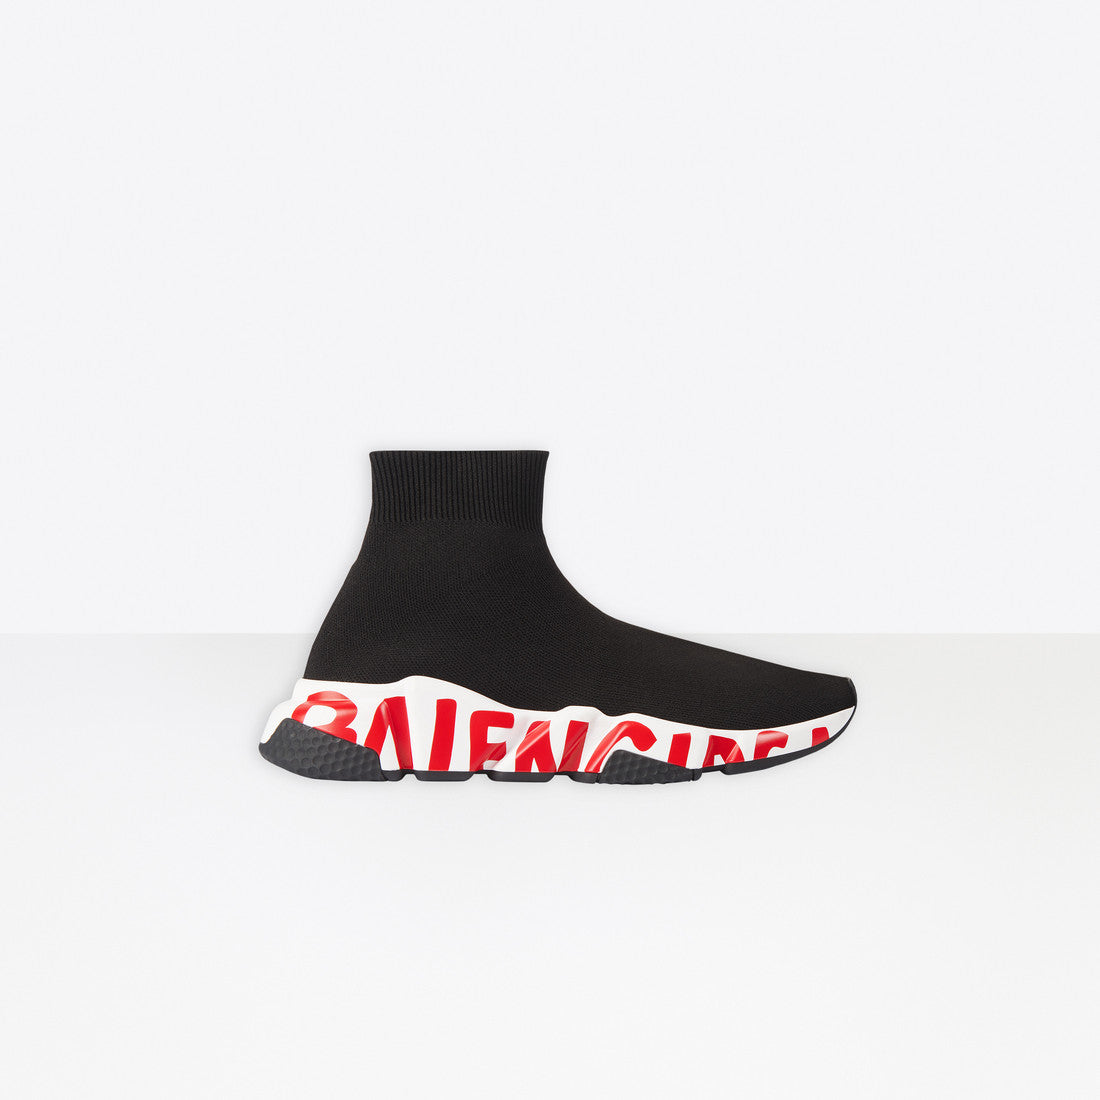 BALENCIAGA - SPEED LT KNIT/GRAFFITI SOLE W | Black/White/Red